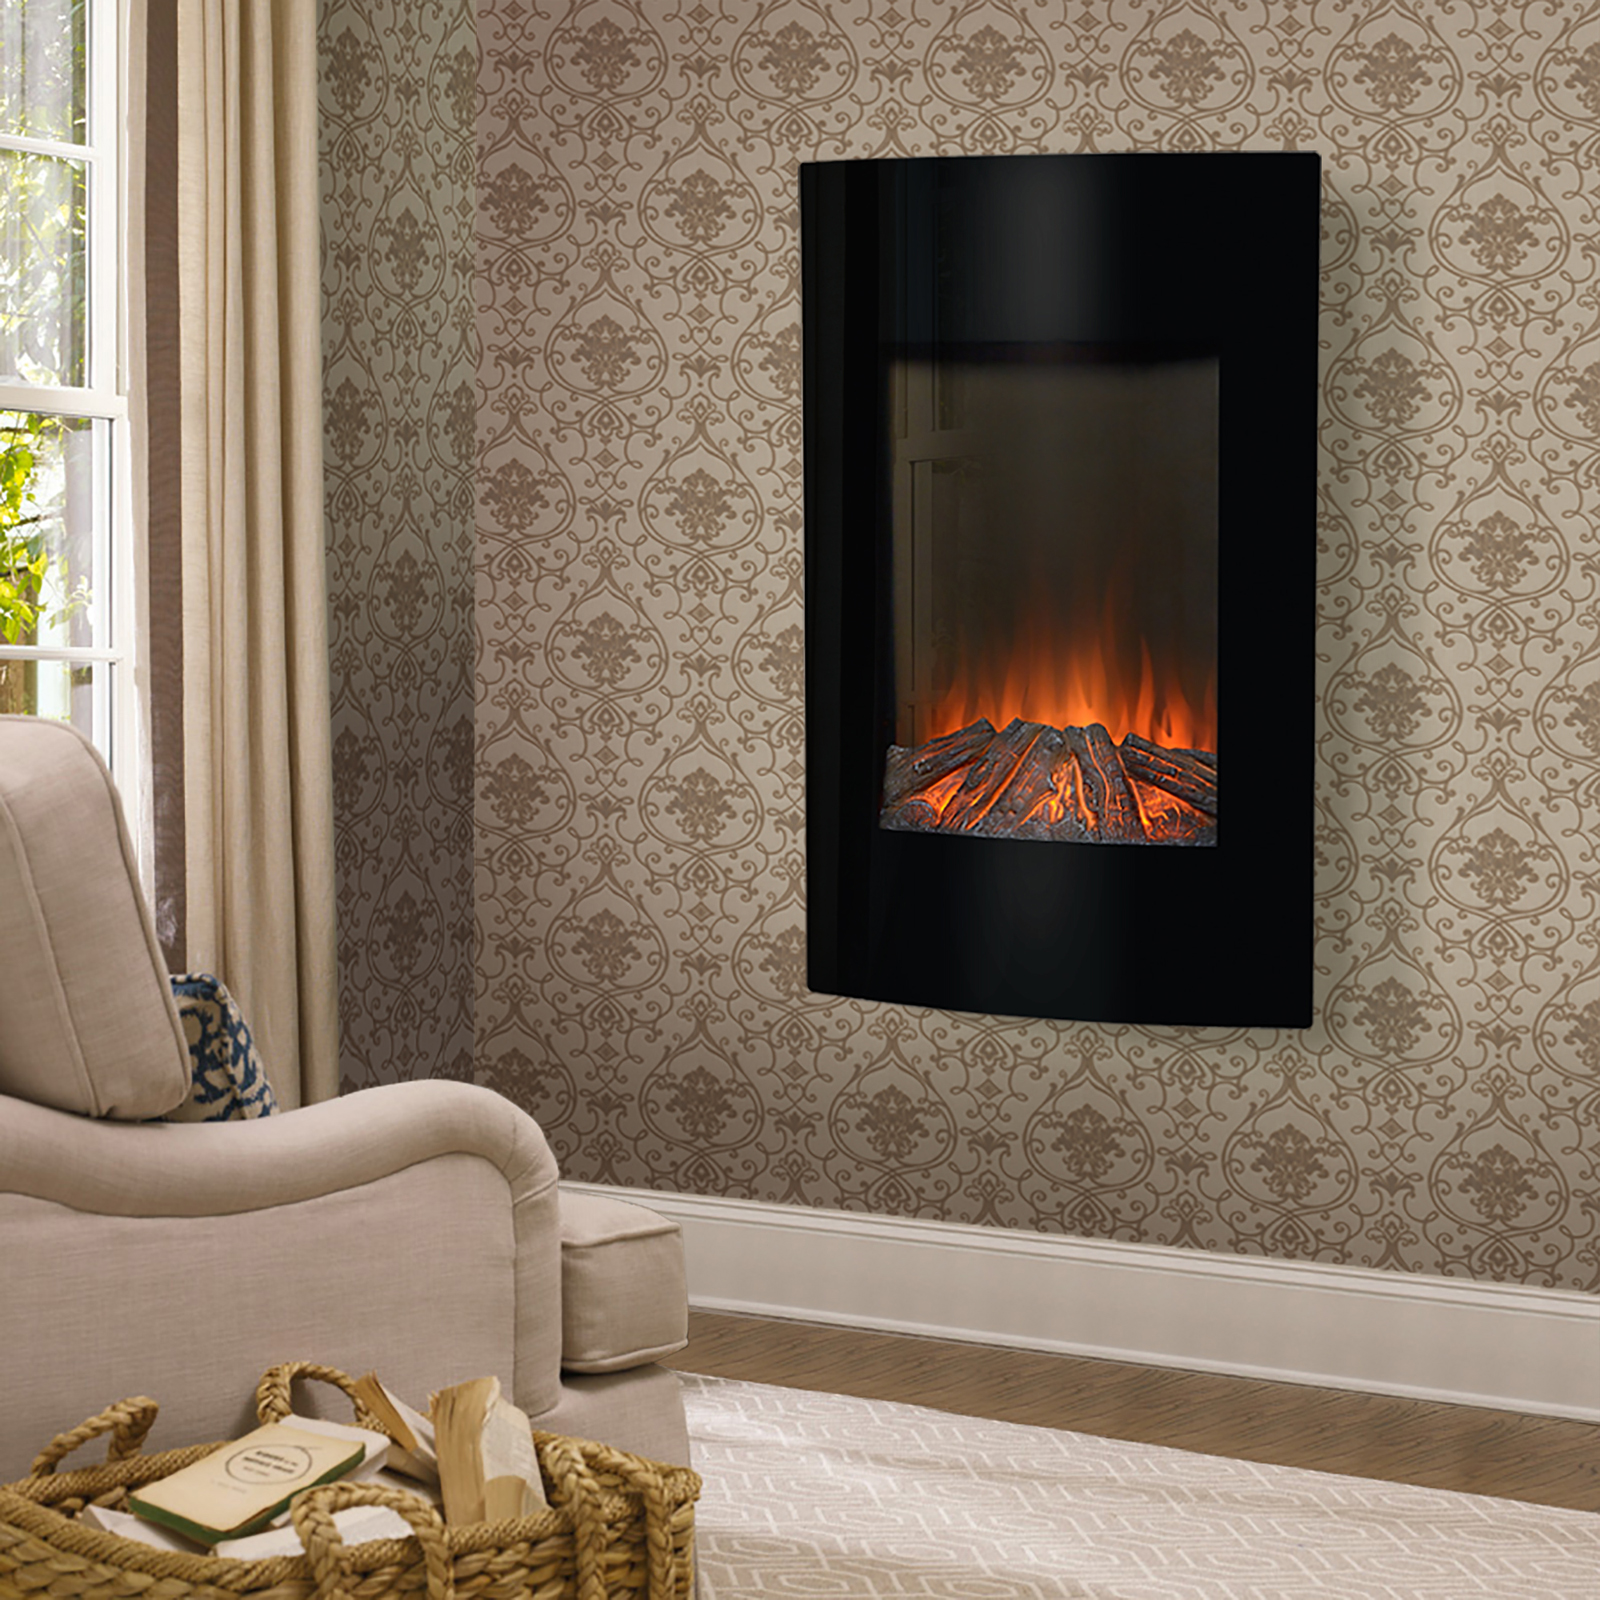 Flamelux High Wall Mount Electric Fireplace Black